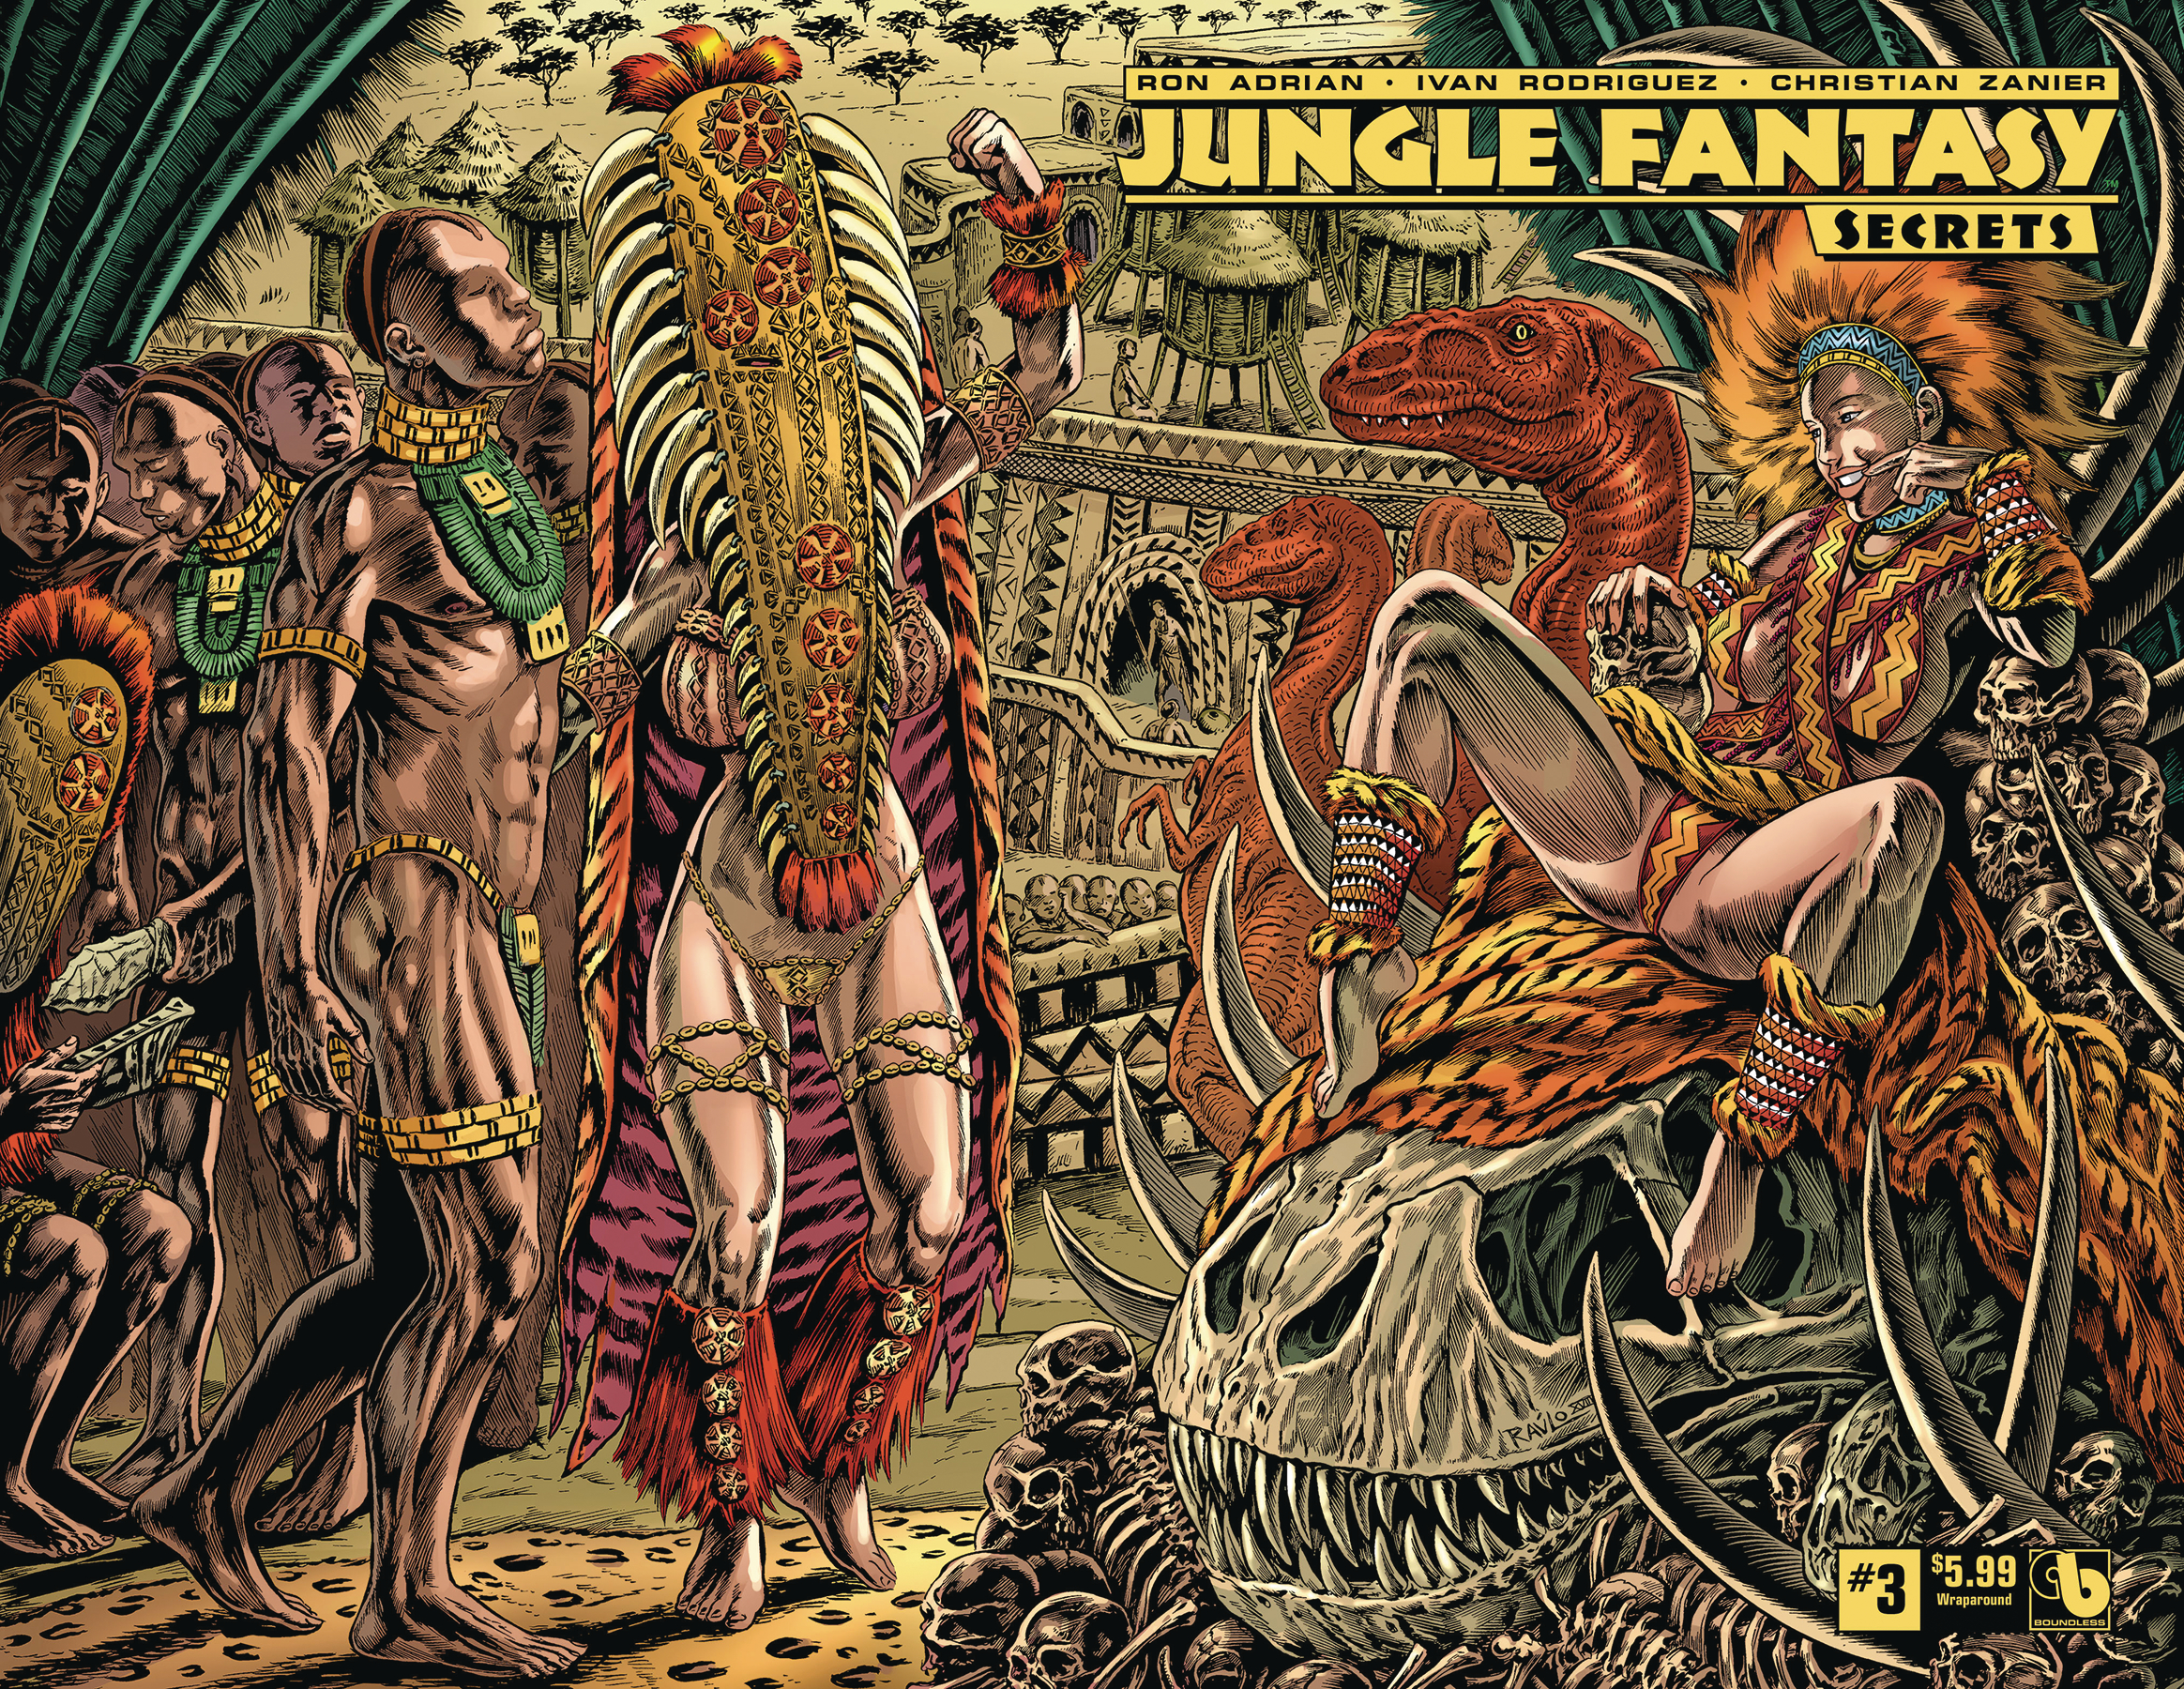 JUNGLE FANTASY SECRETS #3 WRAP (MR)